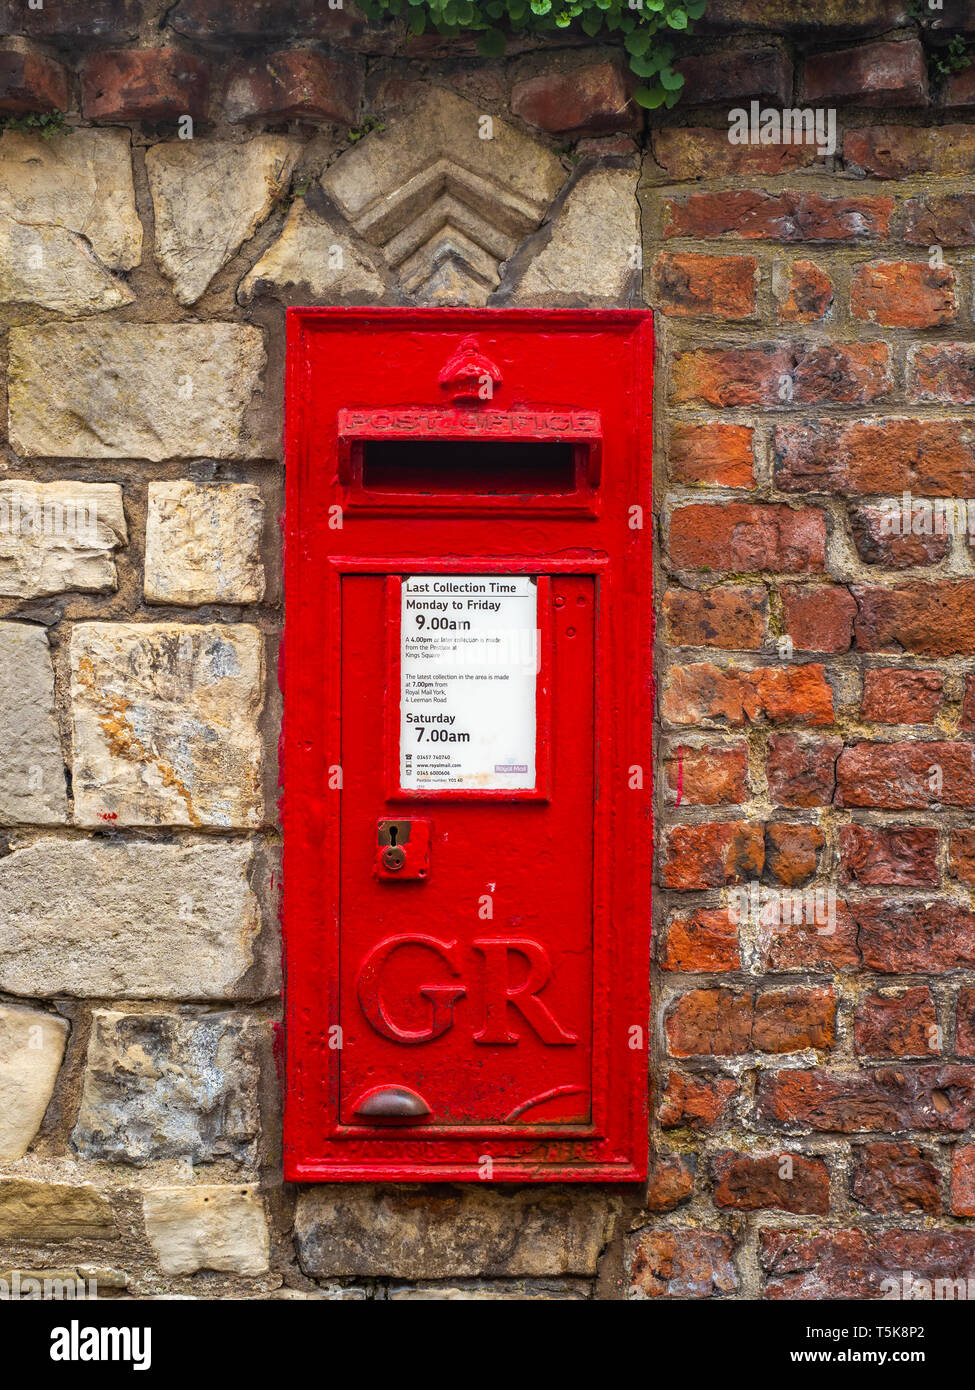 A red British post box made by A Handyside in Derby for the Royal Mail postal service in the UK - Stock Image